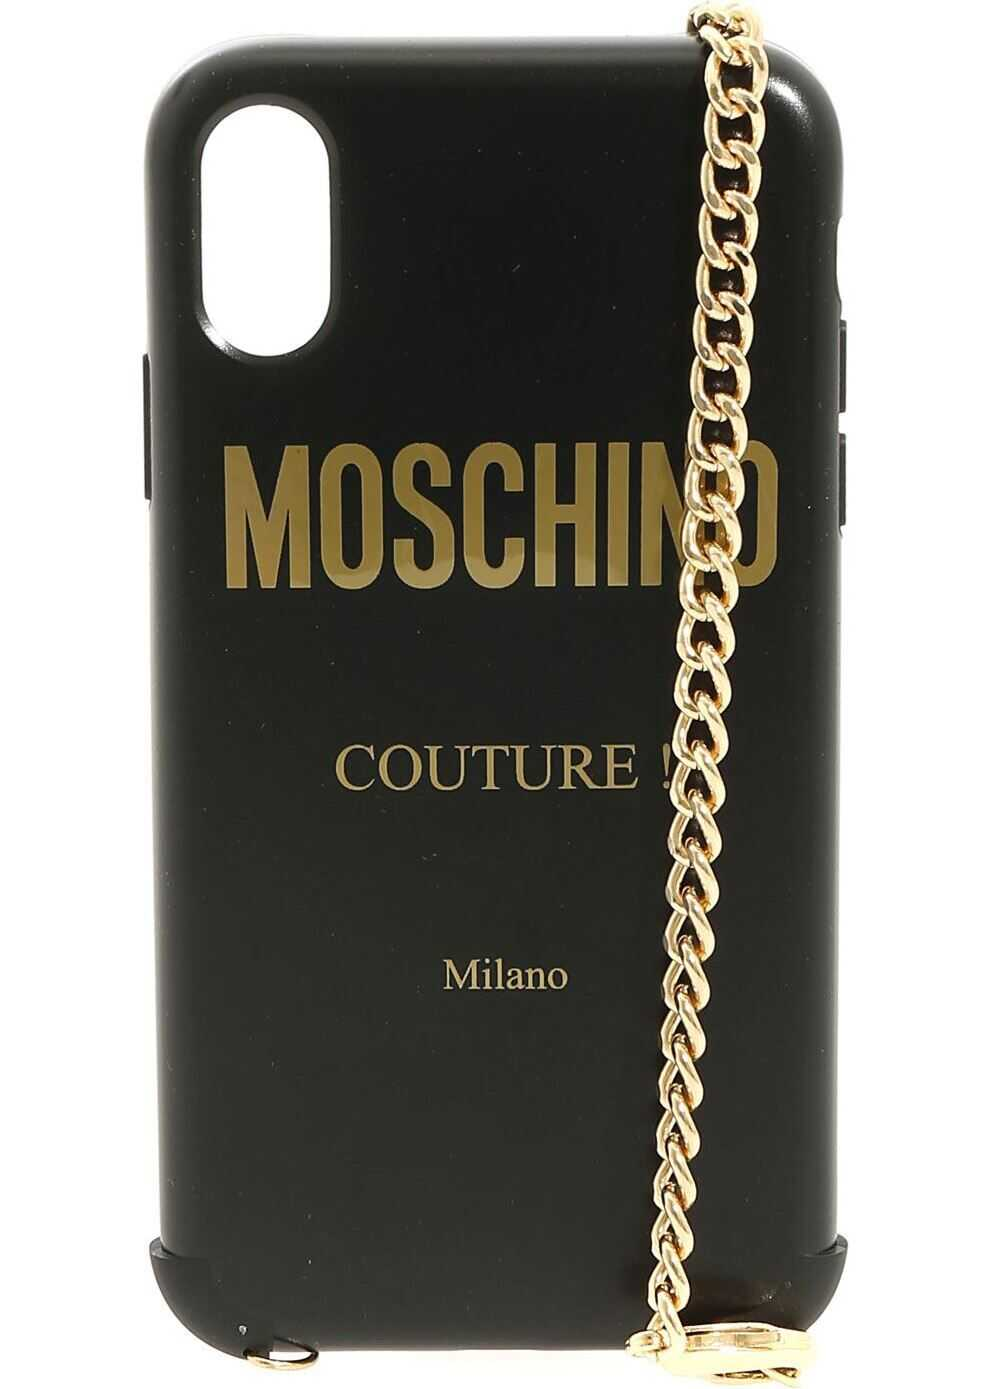 Iphone Xr Cover In Black With Moschino Logo thumbnail